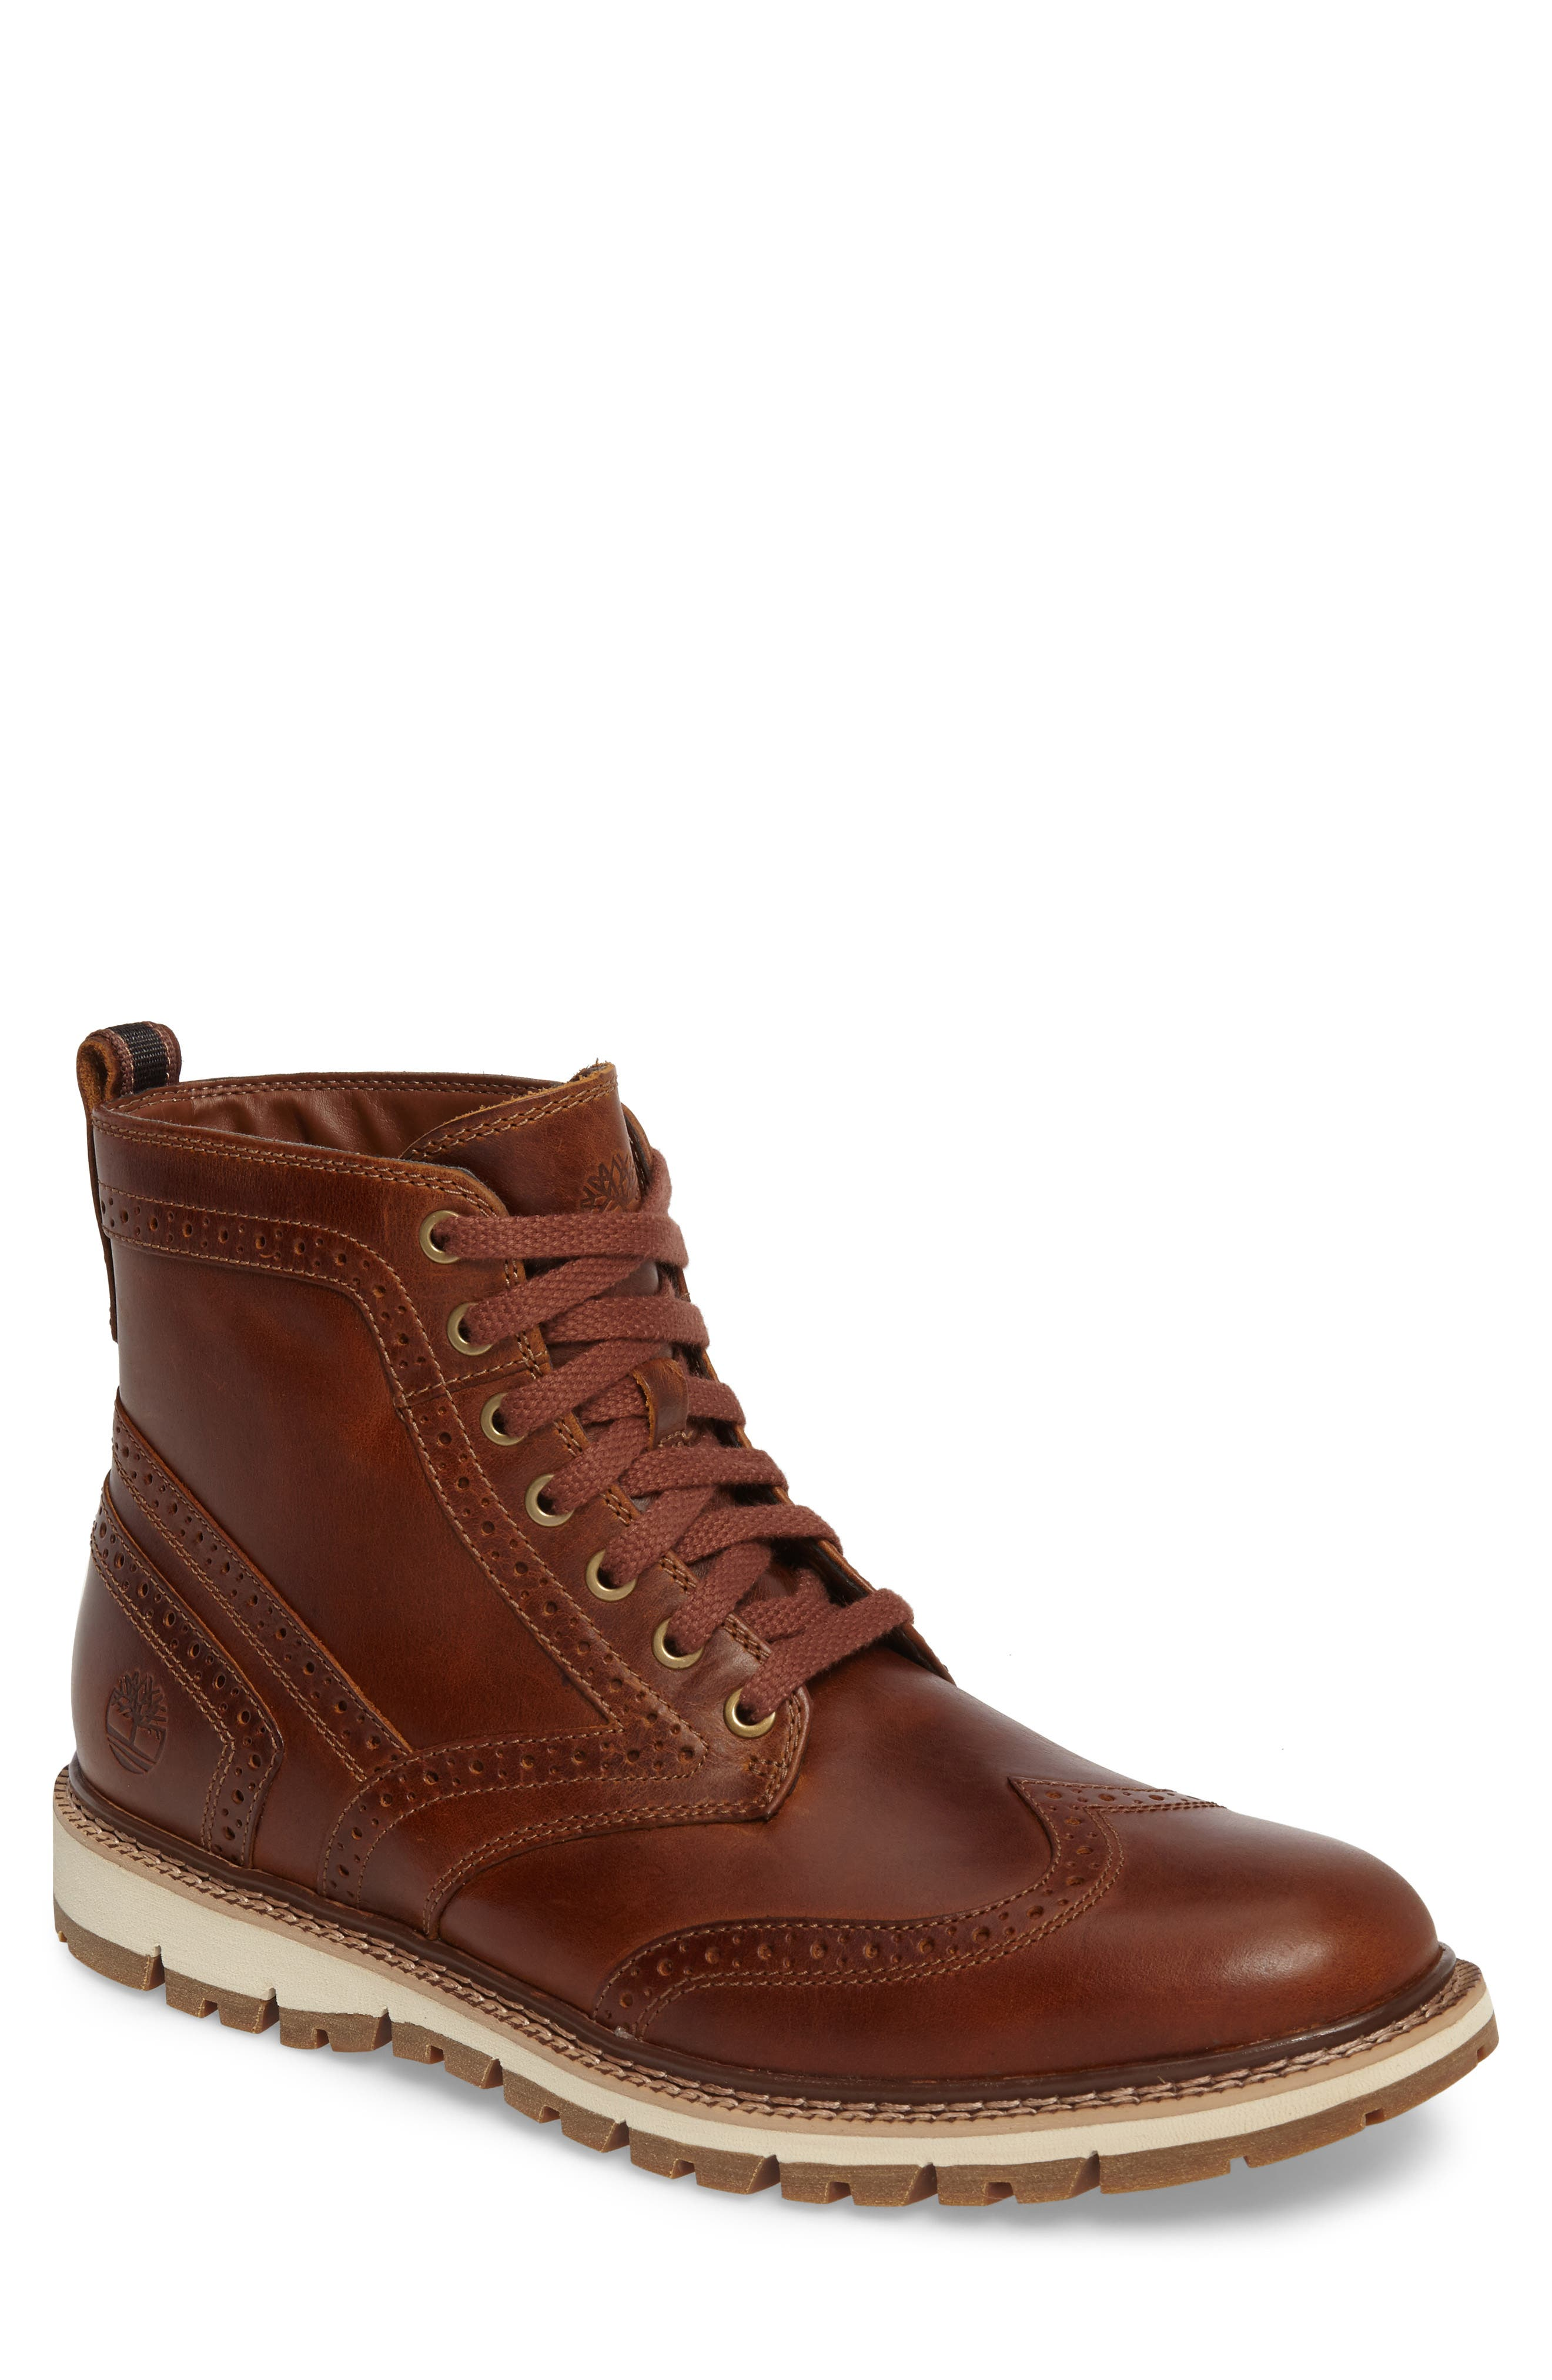 Britton Hill Wingtip Boot,                             Main thumbnail 2, color,